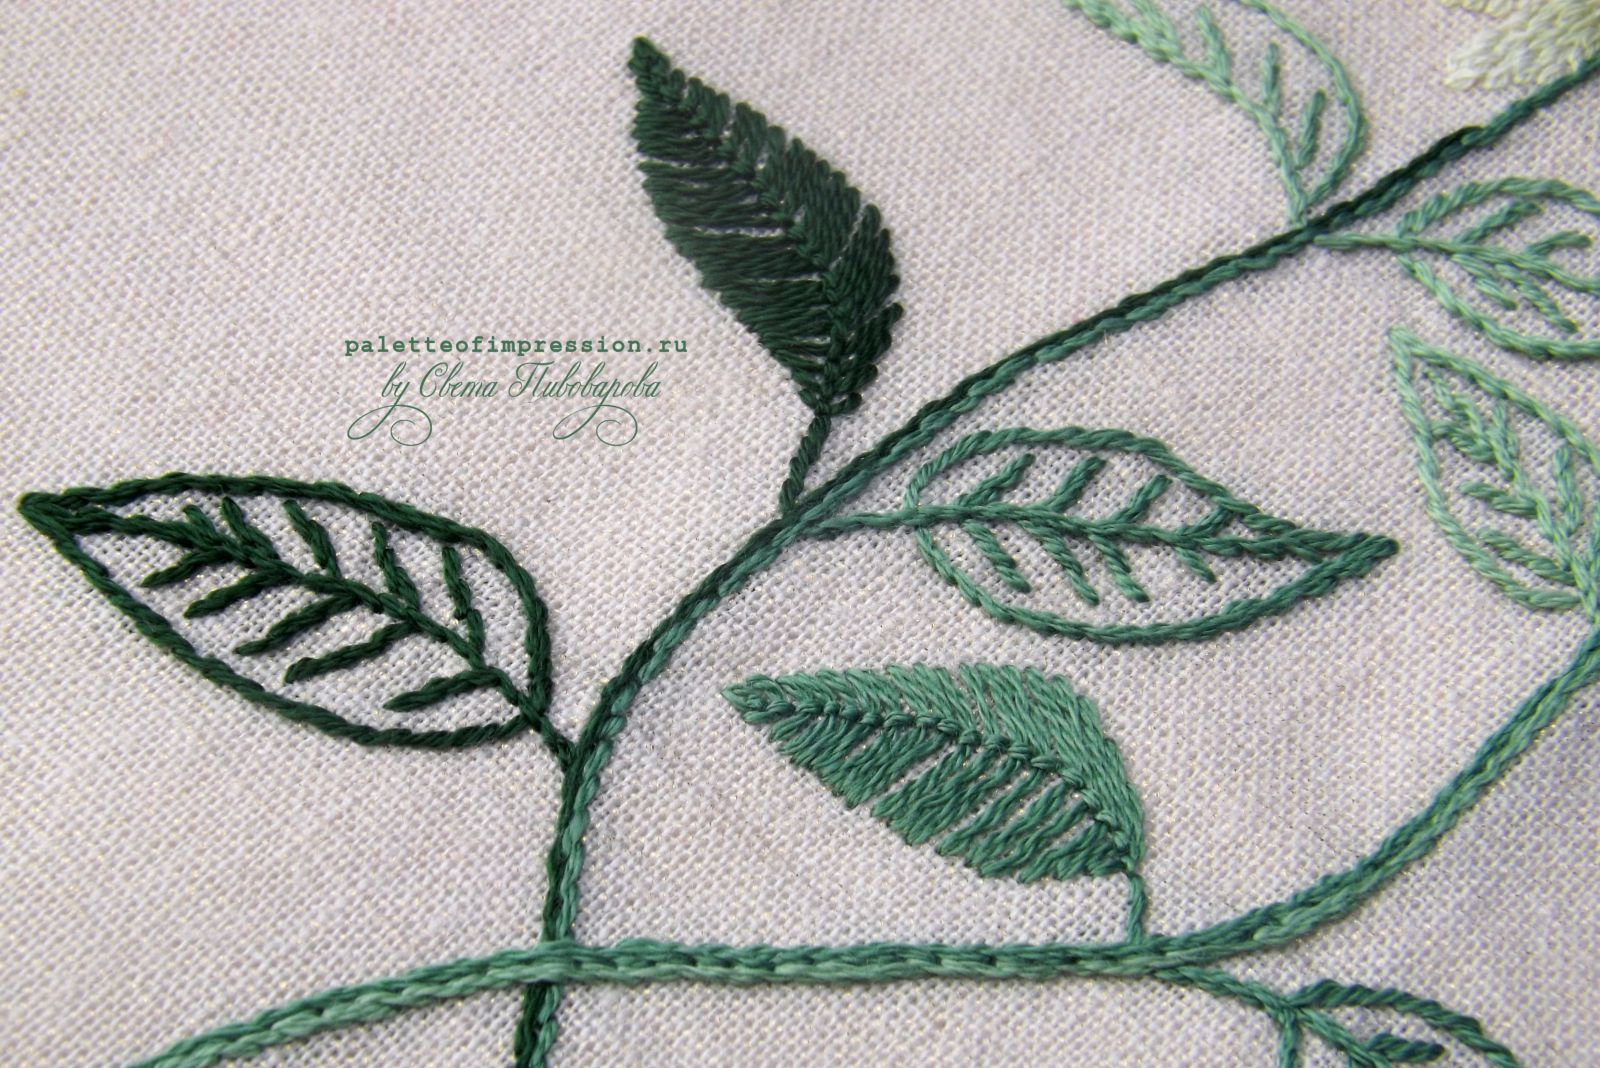 Бергамот. Монарда. Дизайн Herb Embroidery on Linen by Sadako Totsuka. Декоративная вышивка